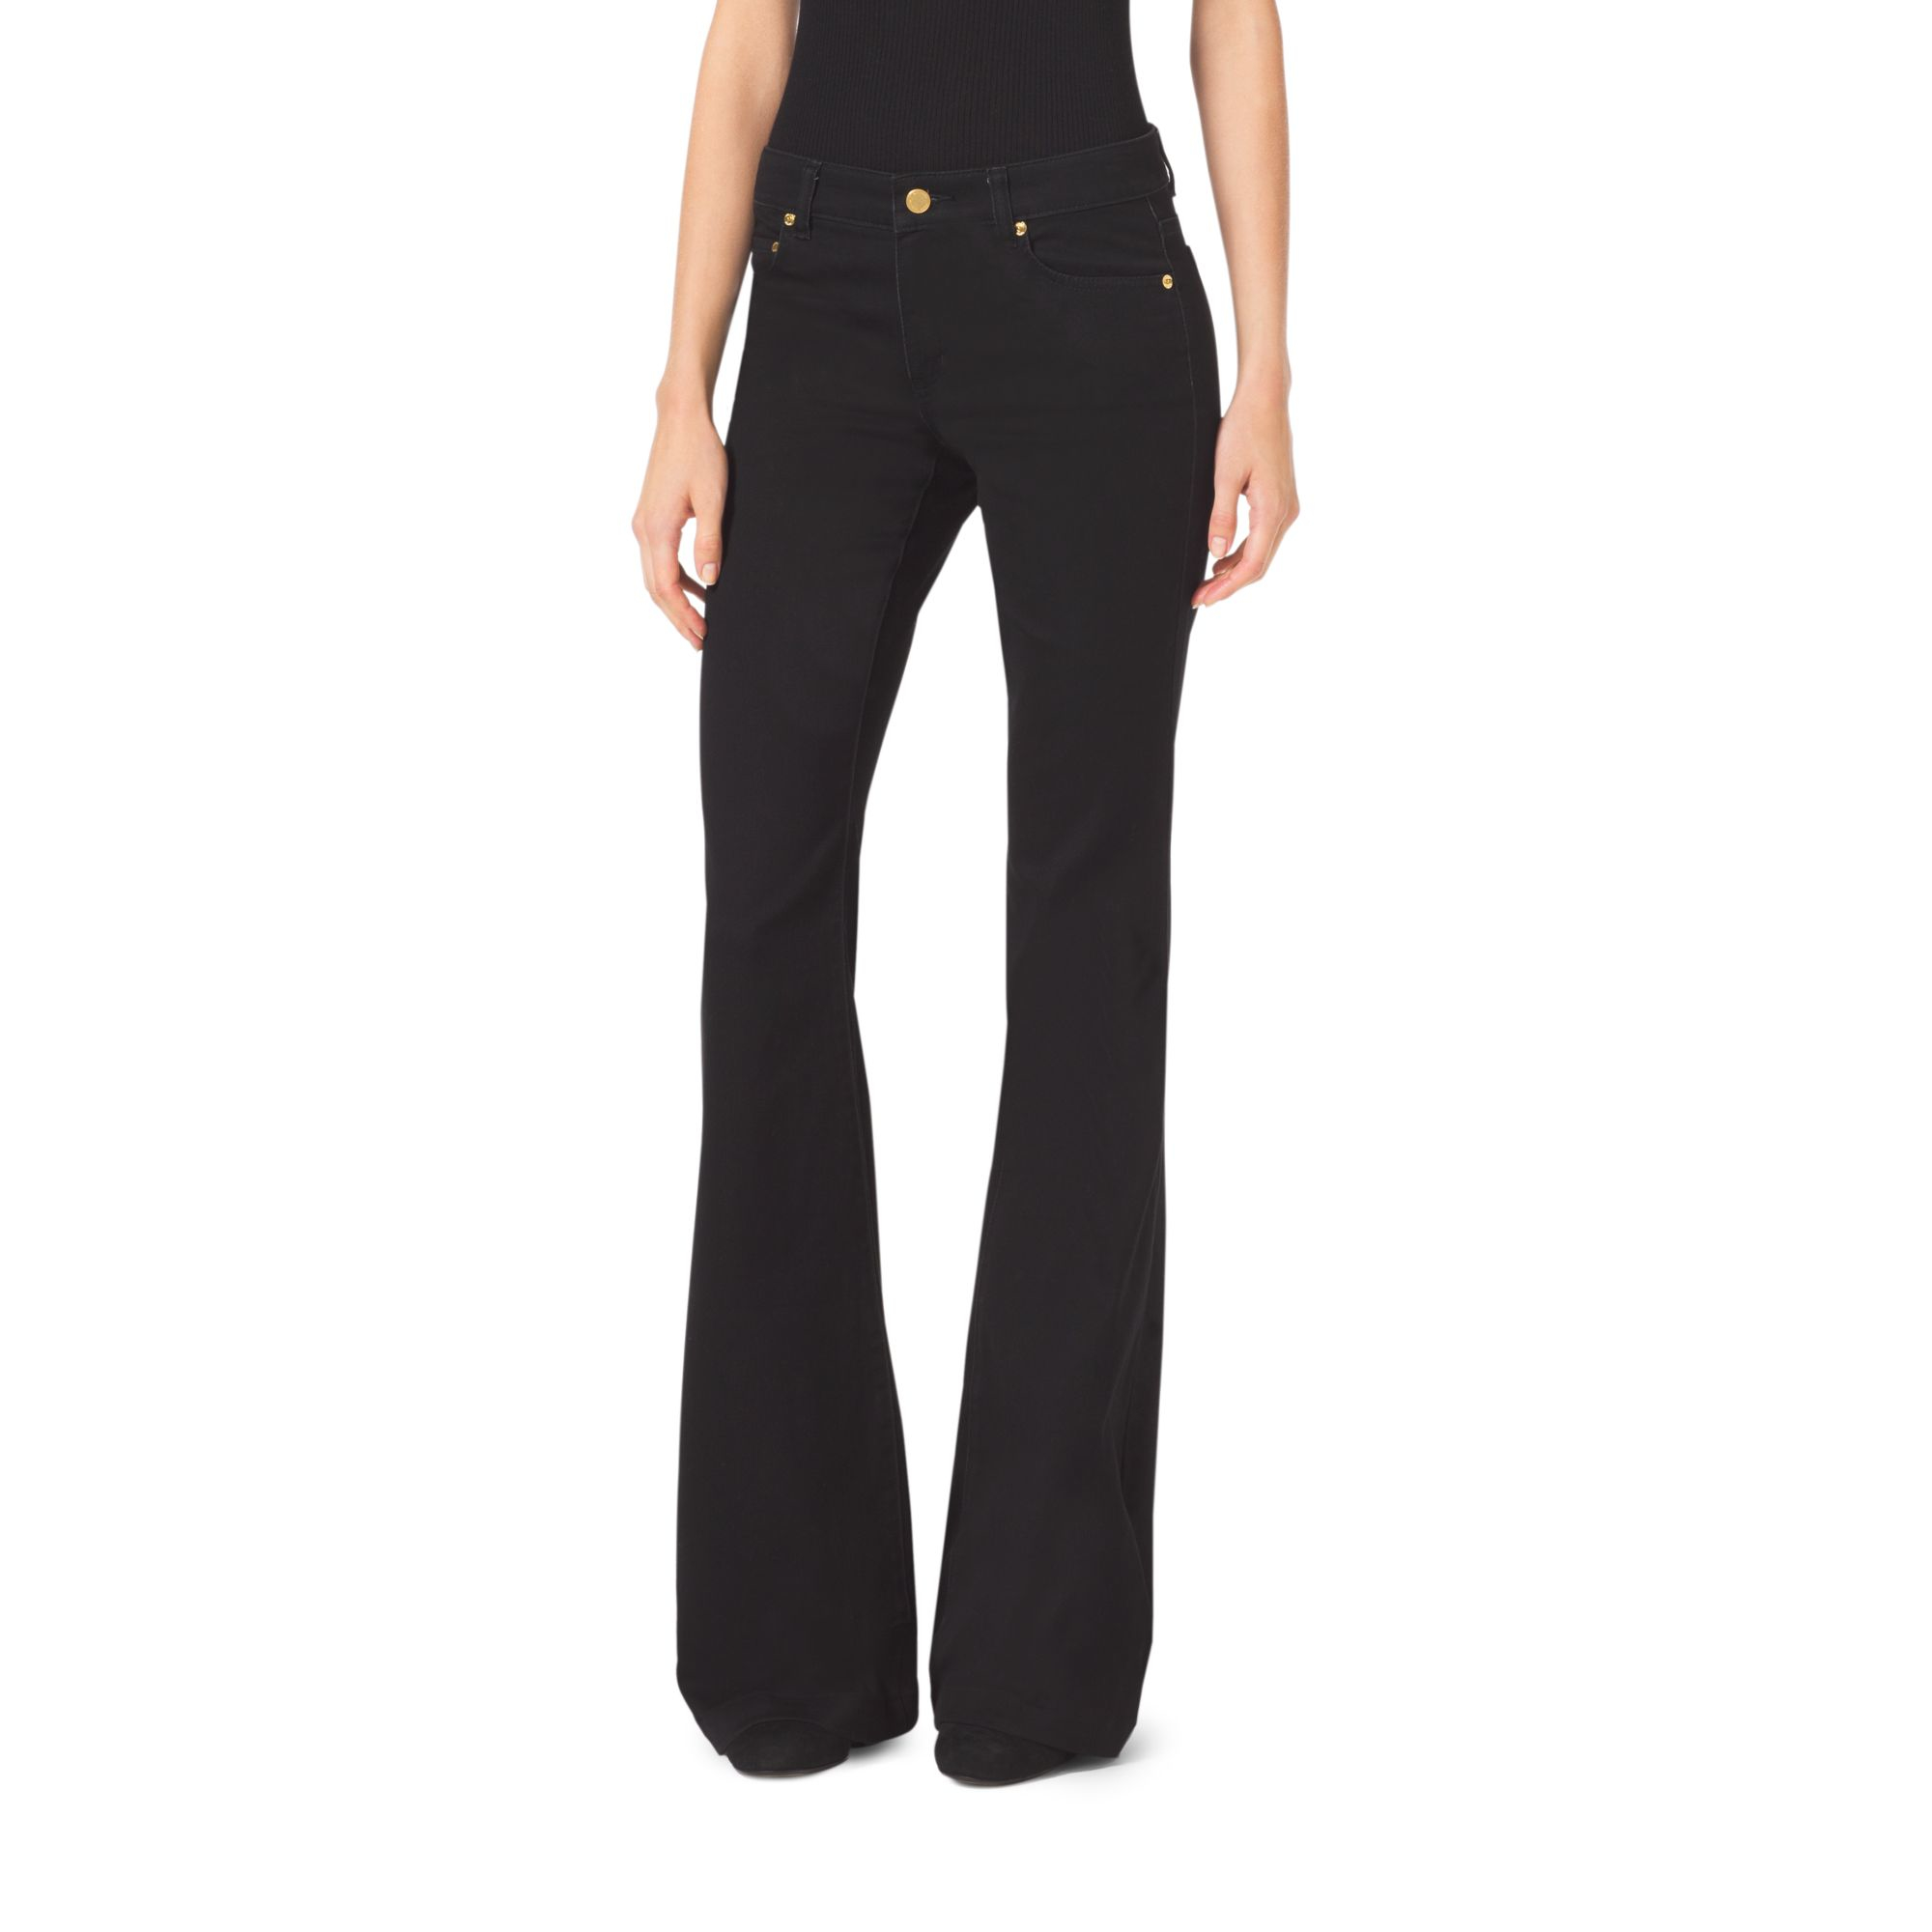 michael kors stretch flared jeans in black lyst. Black Bedroom Furniture Sets. Home Design Ideas